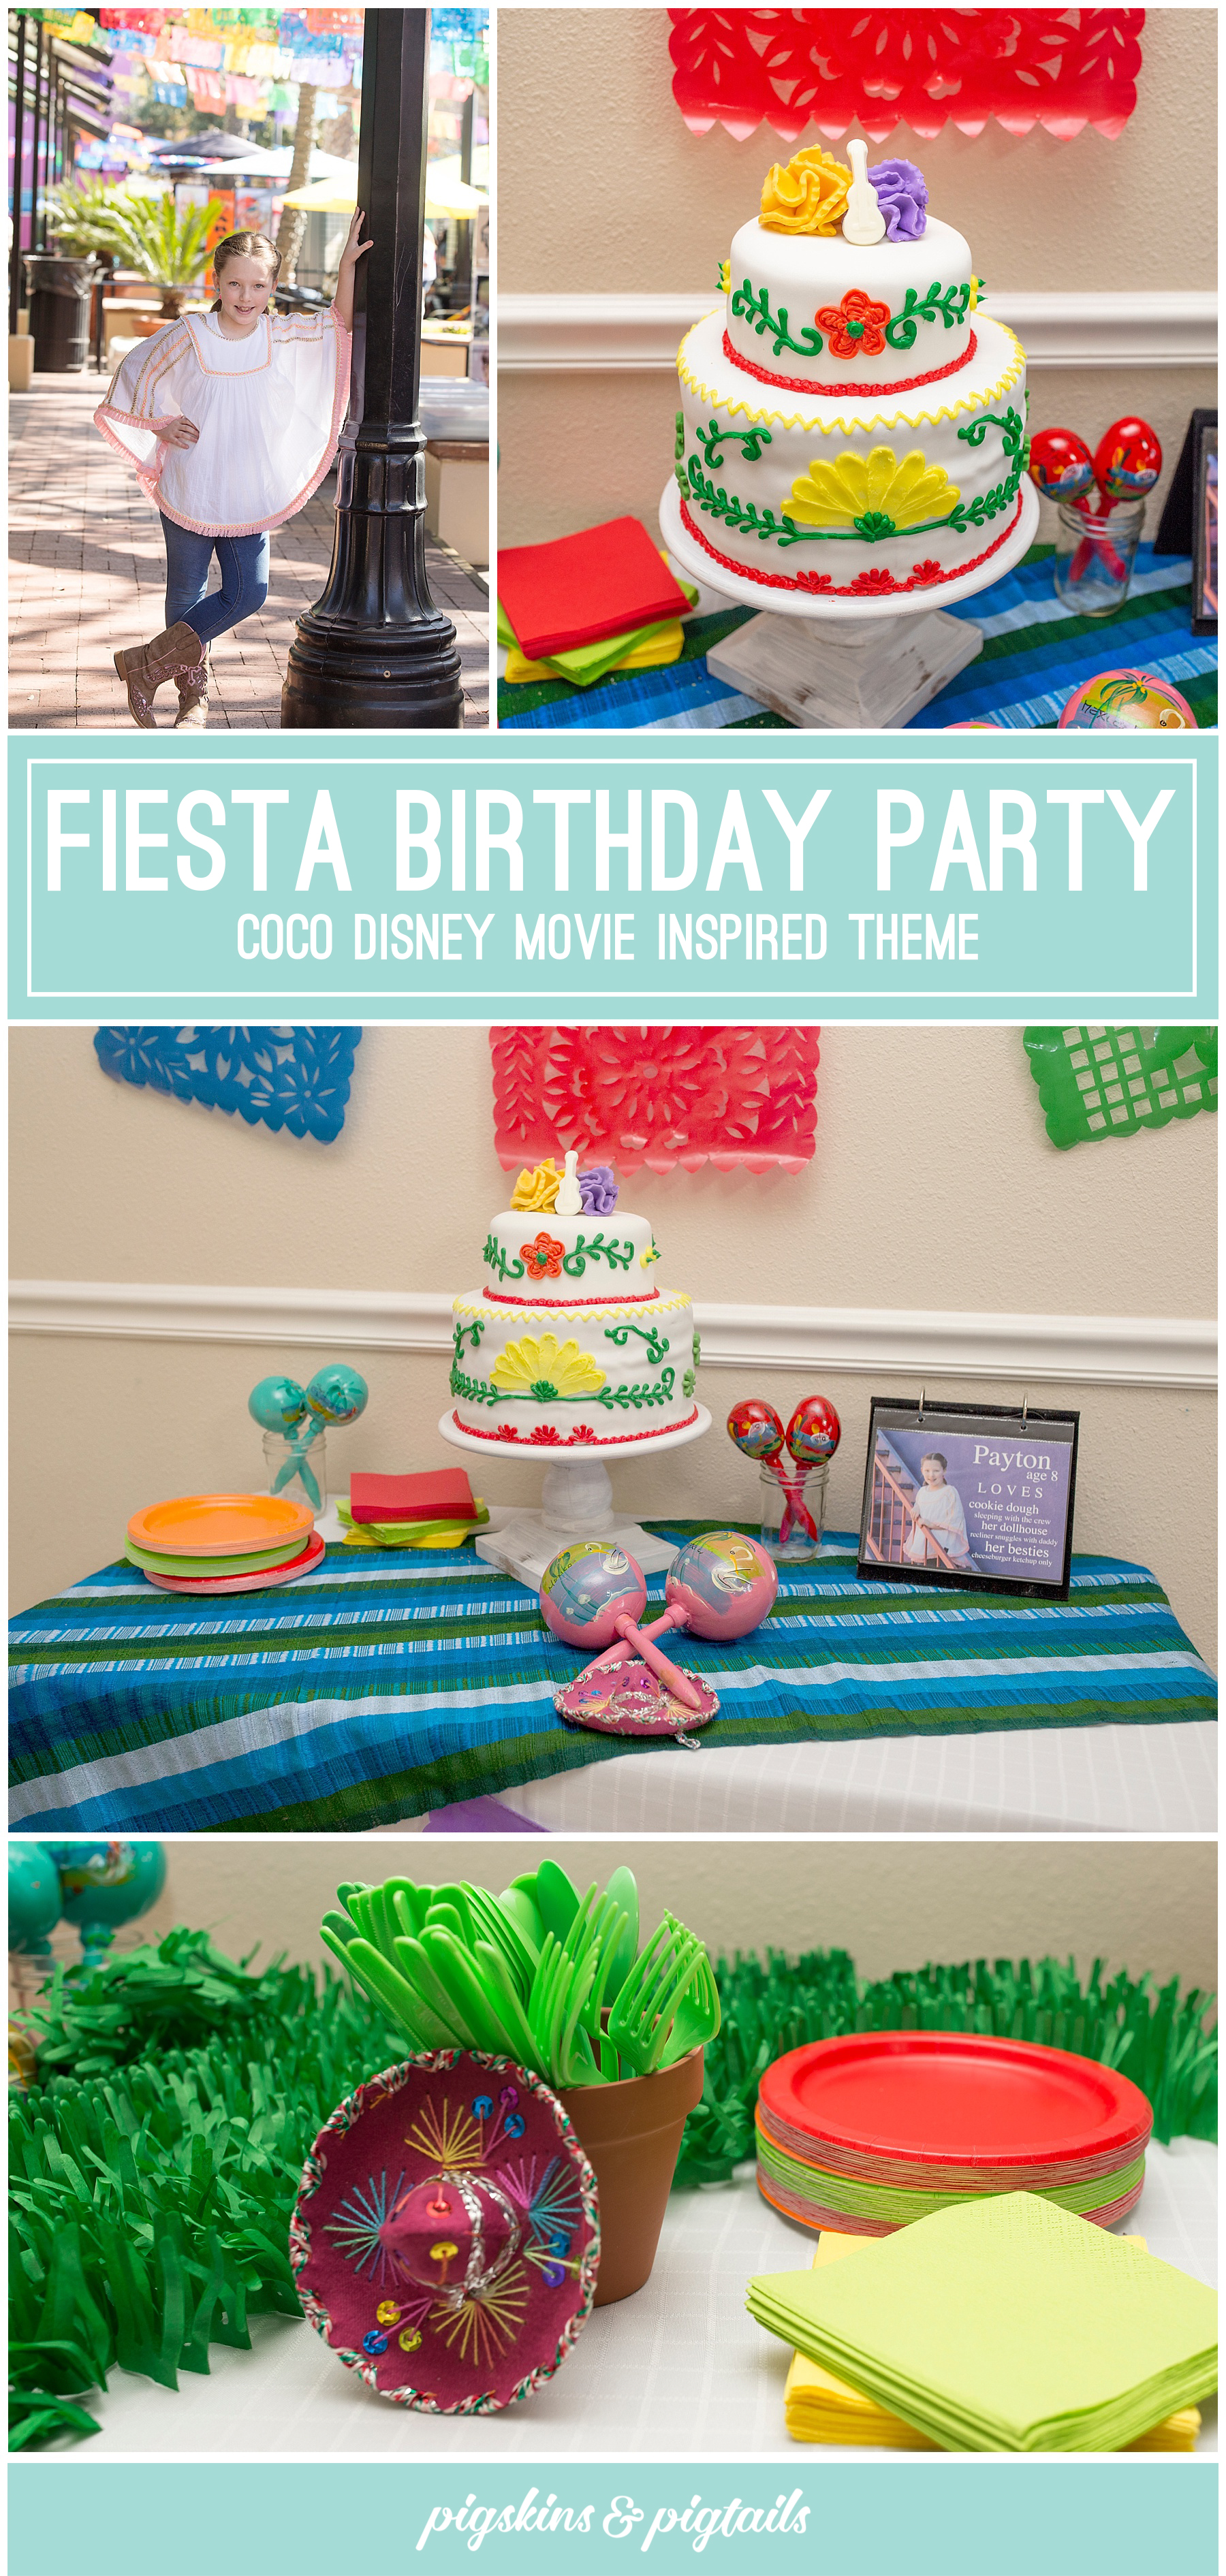 Coco Movie Theme Fiesta Birthday Party 8 Years Old